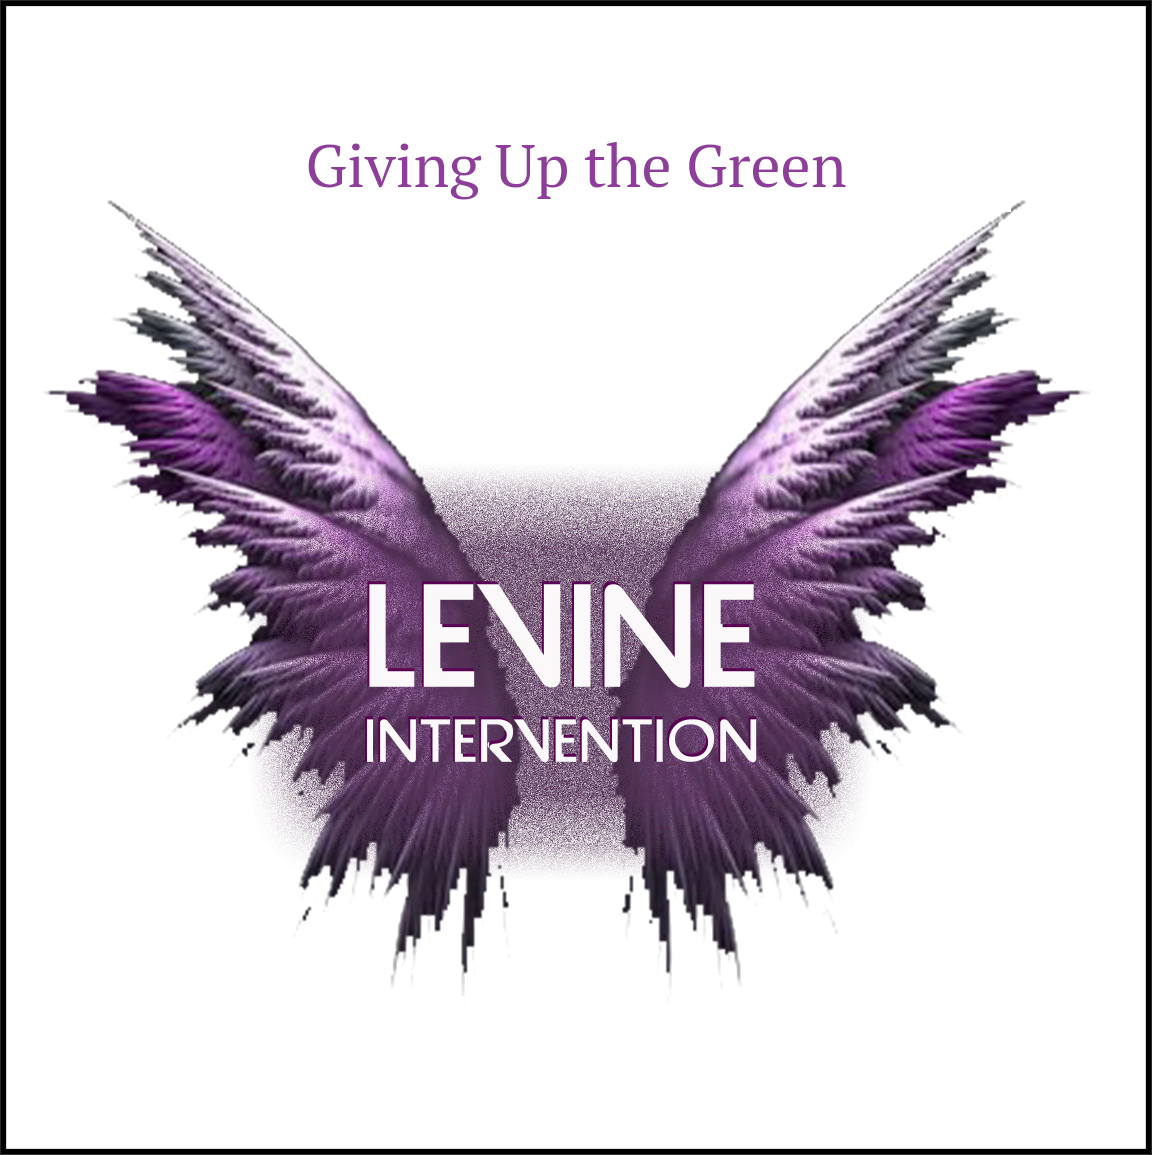 Connie's skin care business is growing by leaps and bounds but she's not sure how to give it her full attention and completely leave her other, more profitable business....in the sex industry.  I will help Connie: GIVE UP THE GREEN and build a more sustainable, long term business.